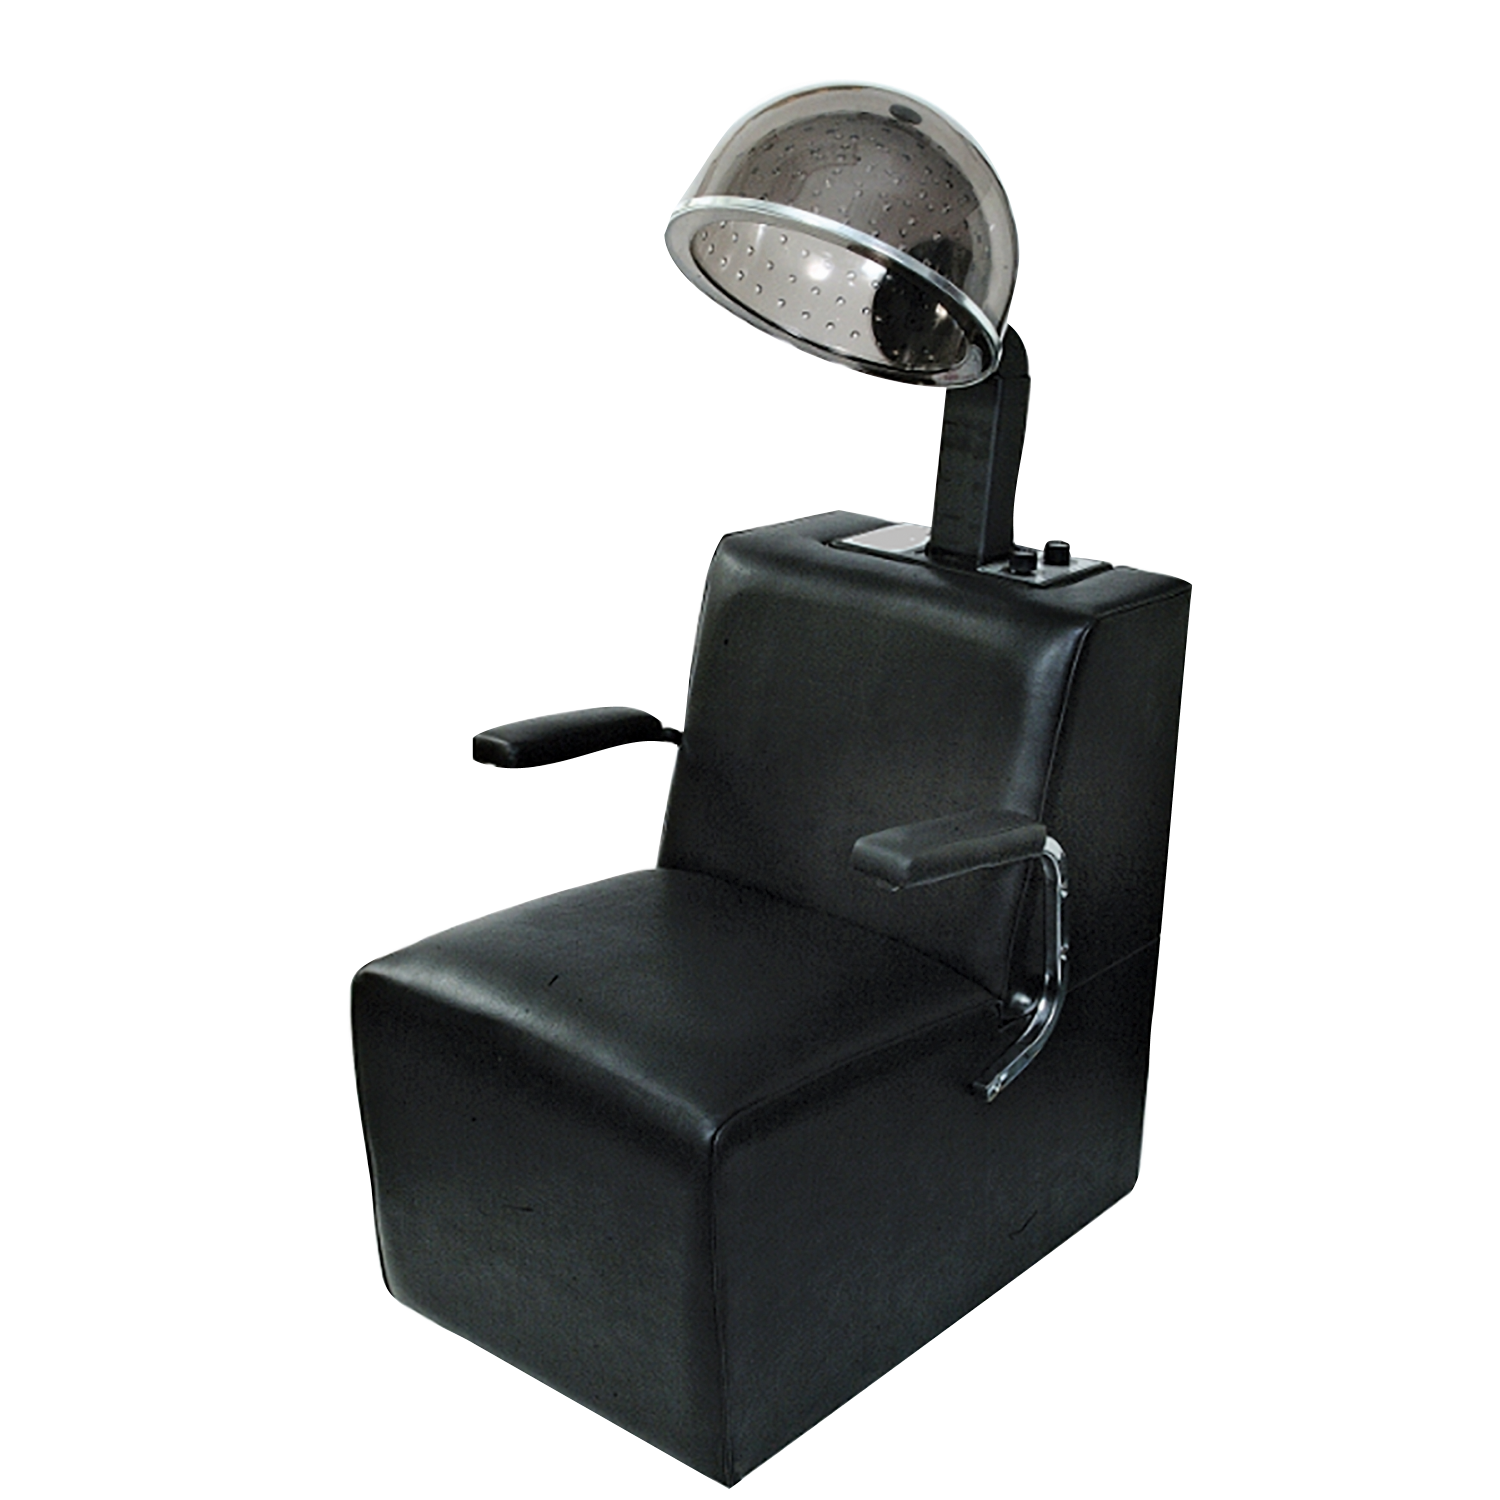 Dryer Chairs venus plus hair dryer and platform base dryer chair combo | hair